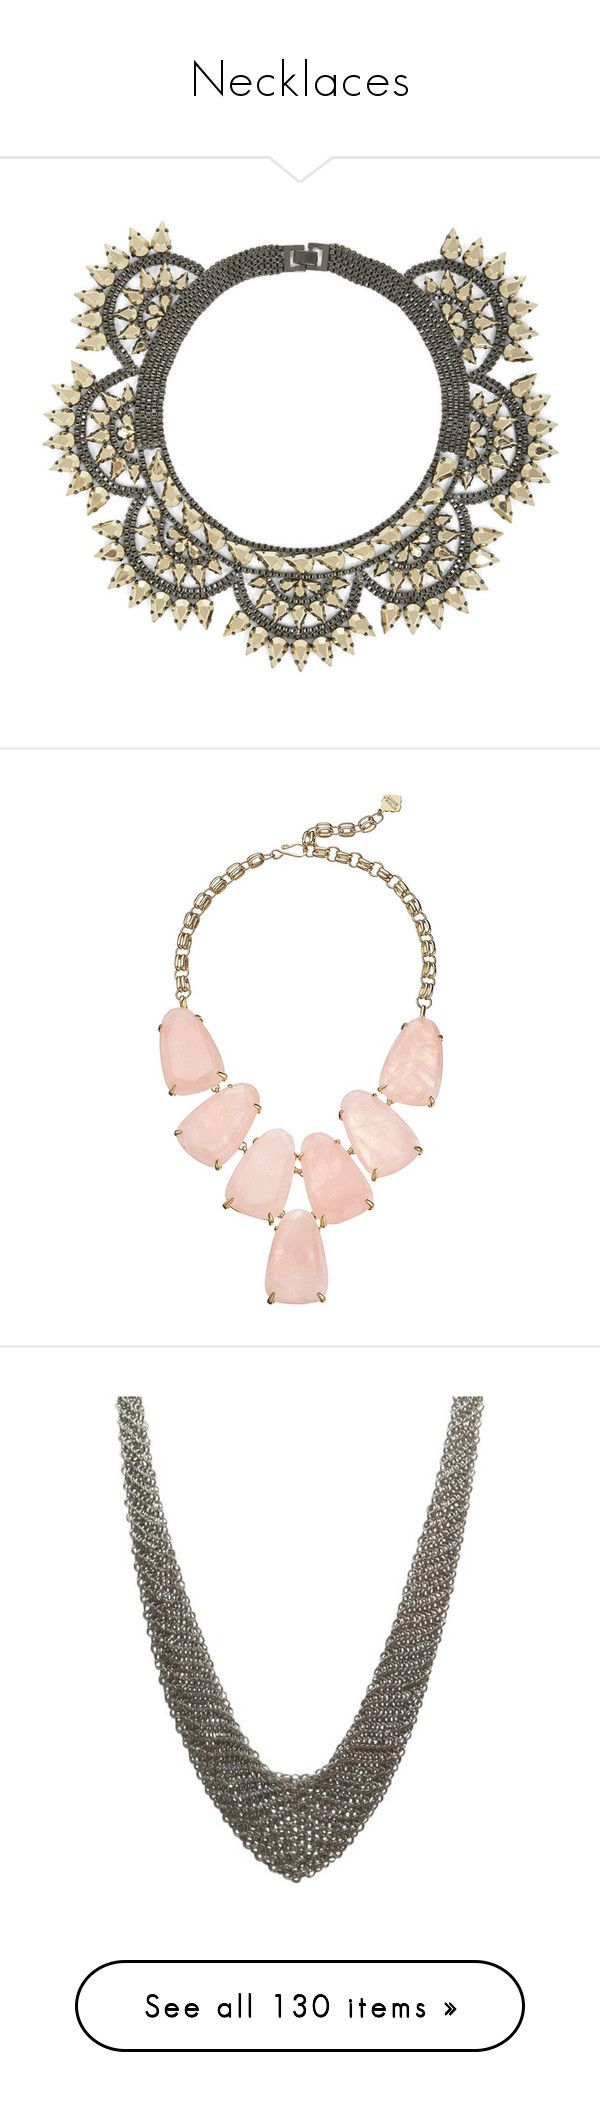 """""""Necklaces"""" by simoneannalivia ❤ liked on Polyvore featuring jewelry, necklaces, gunmetal, art deco necklaces, teardrop bib necklace, metal jewelry, bcbgmaxazria, bib necklaces, chunky chain necklaces and rose quartz pendant necklace"""